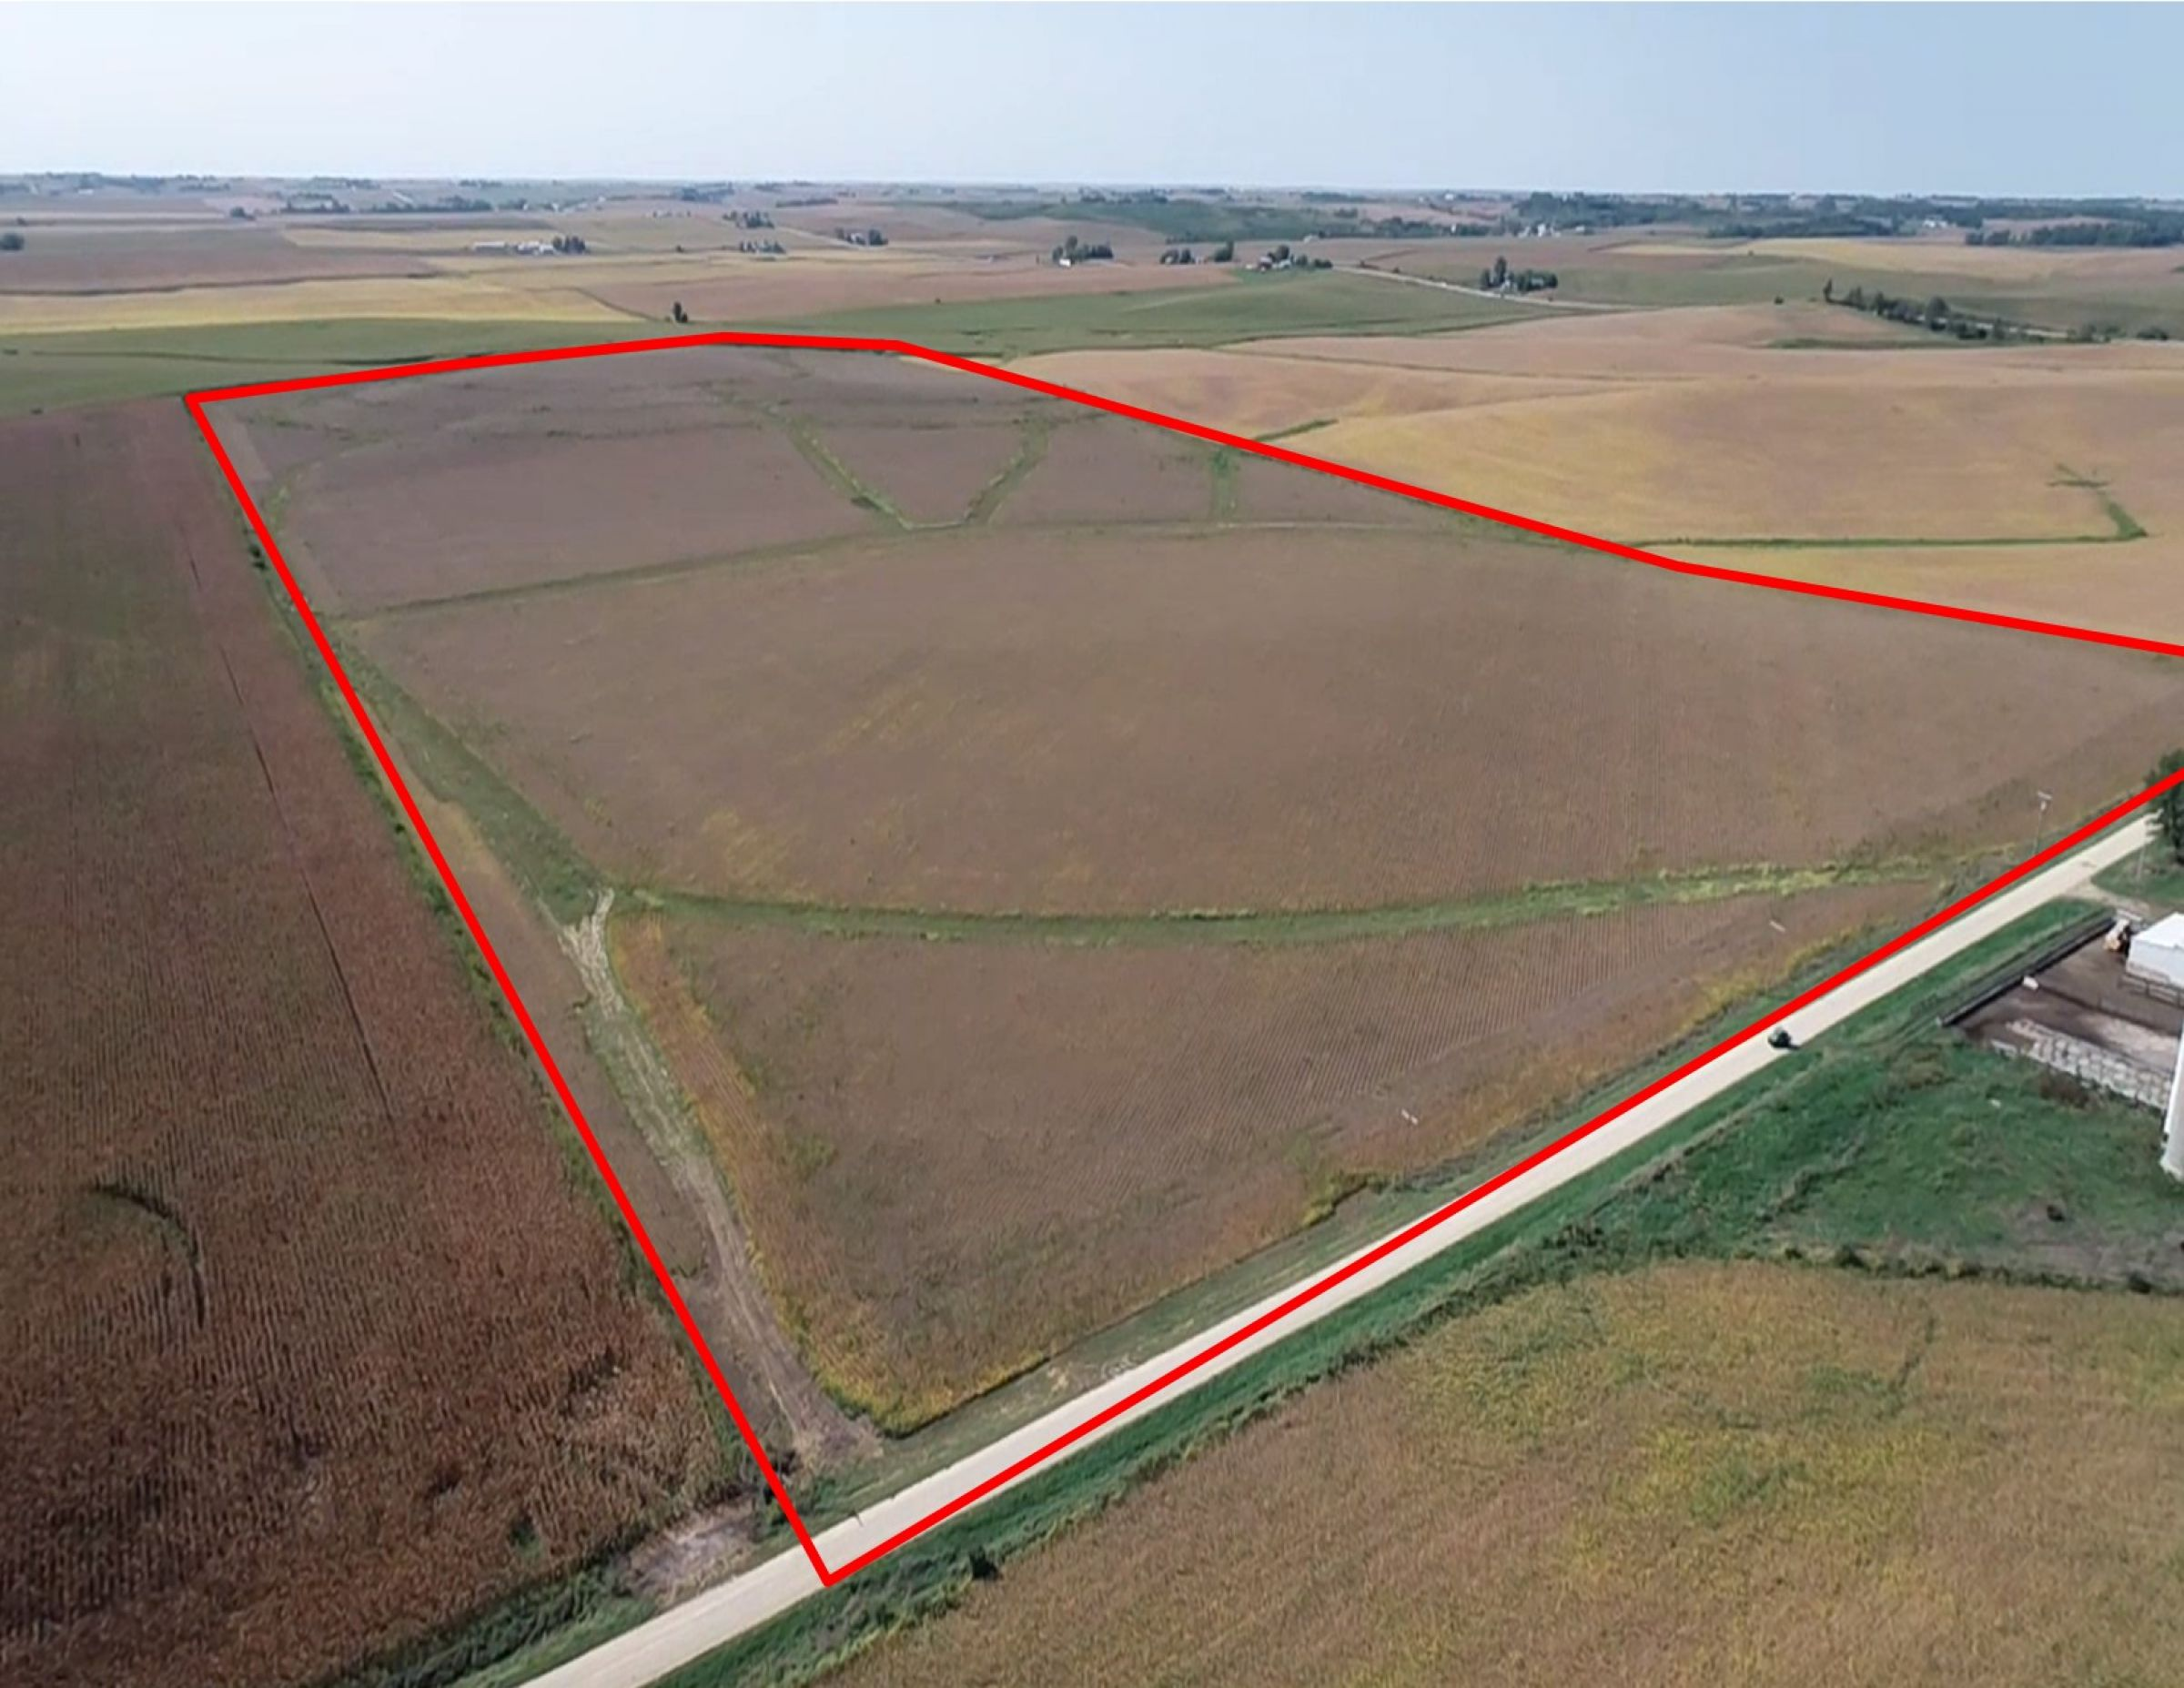 auctions-jackson-county-iowa-79-acres-listing-number-15751-0-2021-09-21-152649.jpg